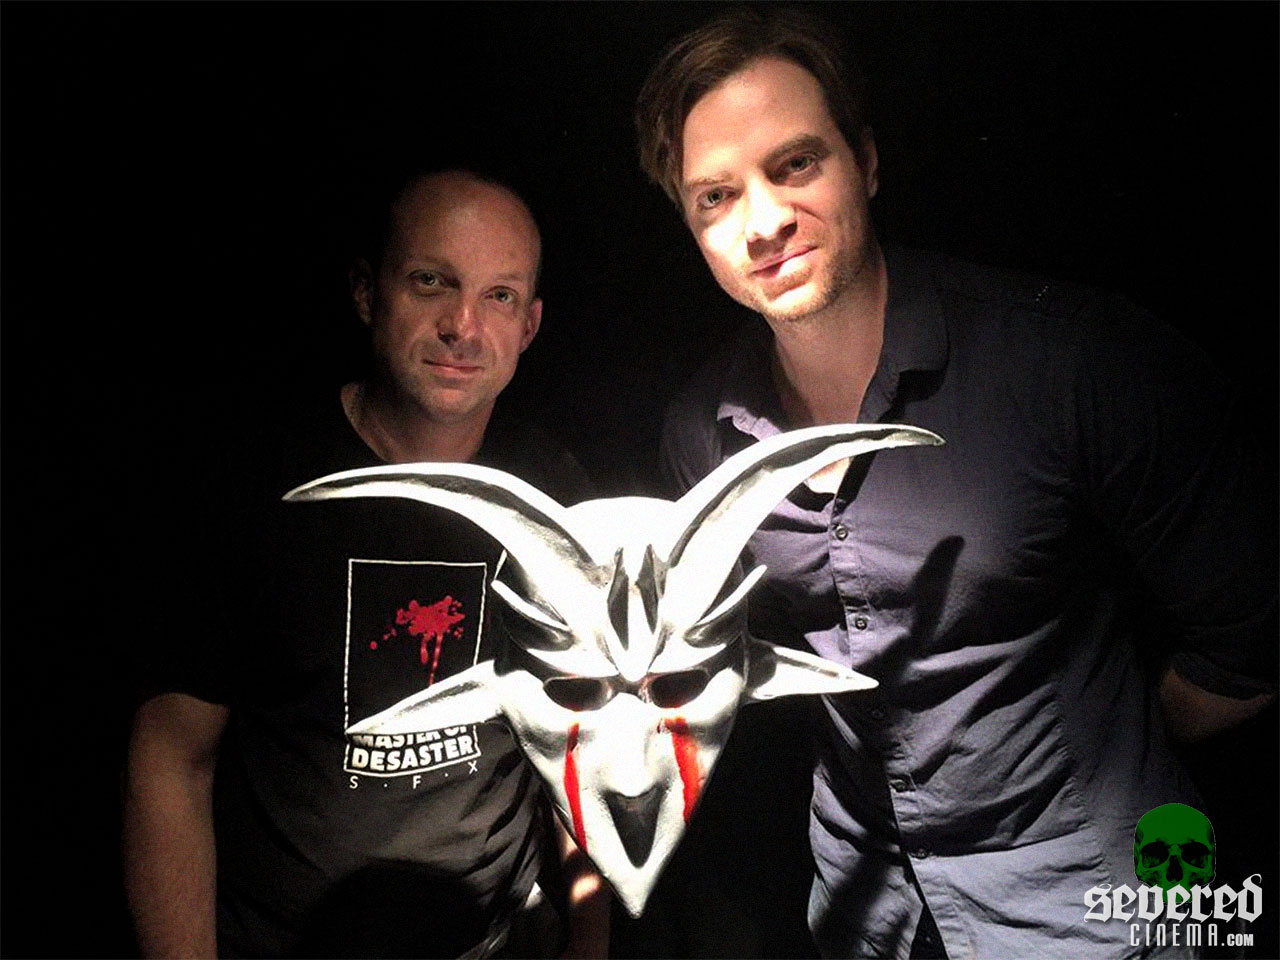 Photo of Matthan Harris from Behind the Scenes of Baphomet on Severed Cinema